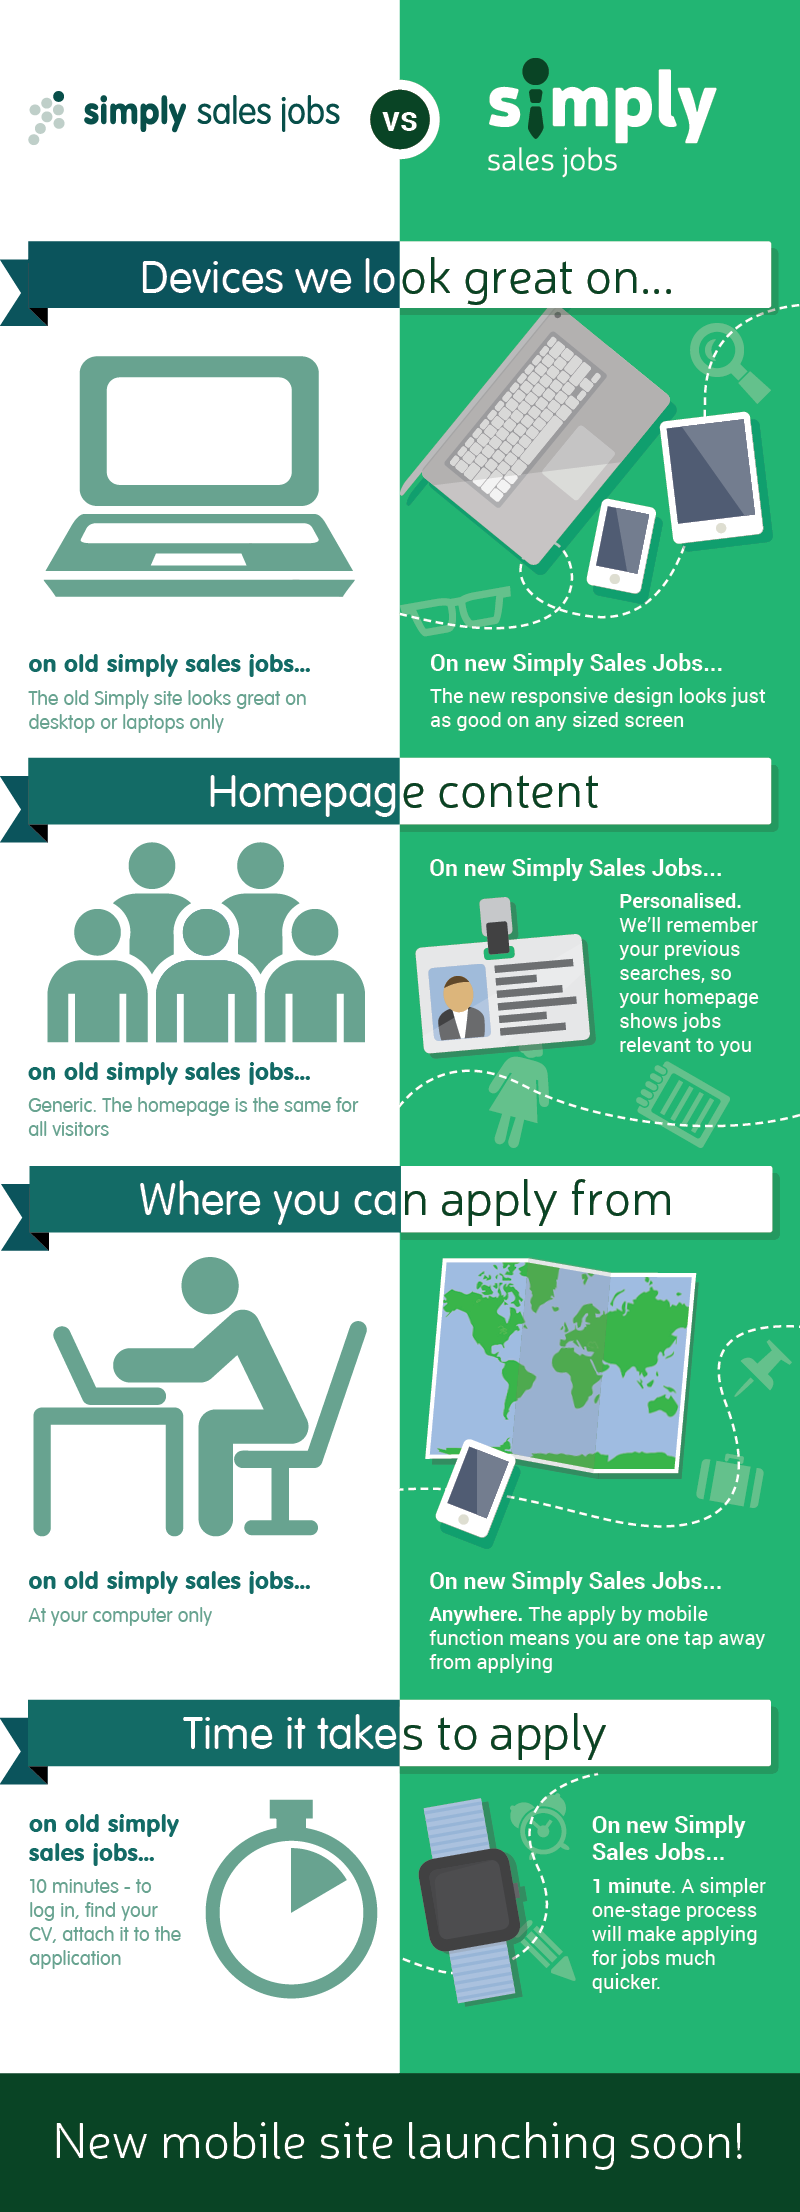 Simply Sale Jobs Mobile Site